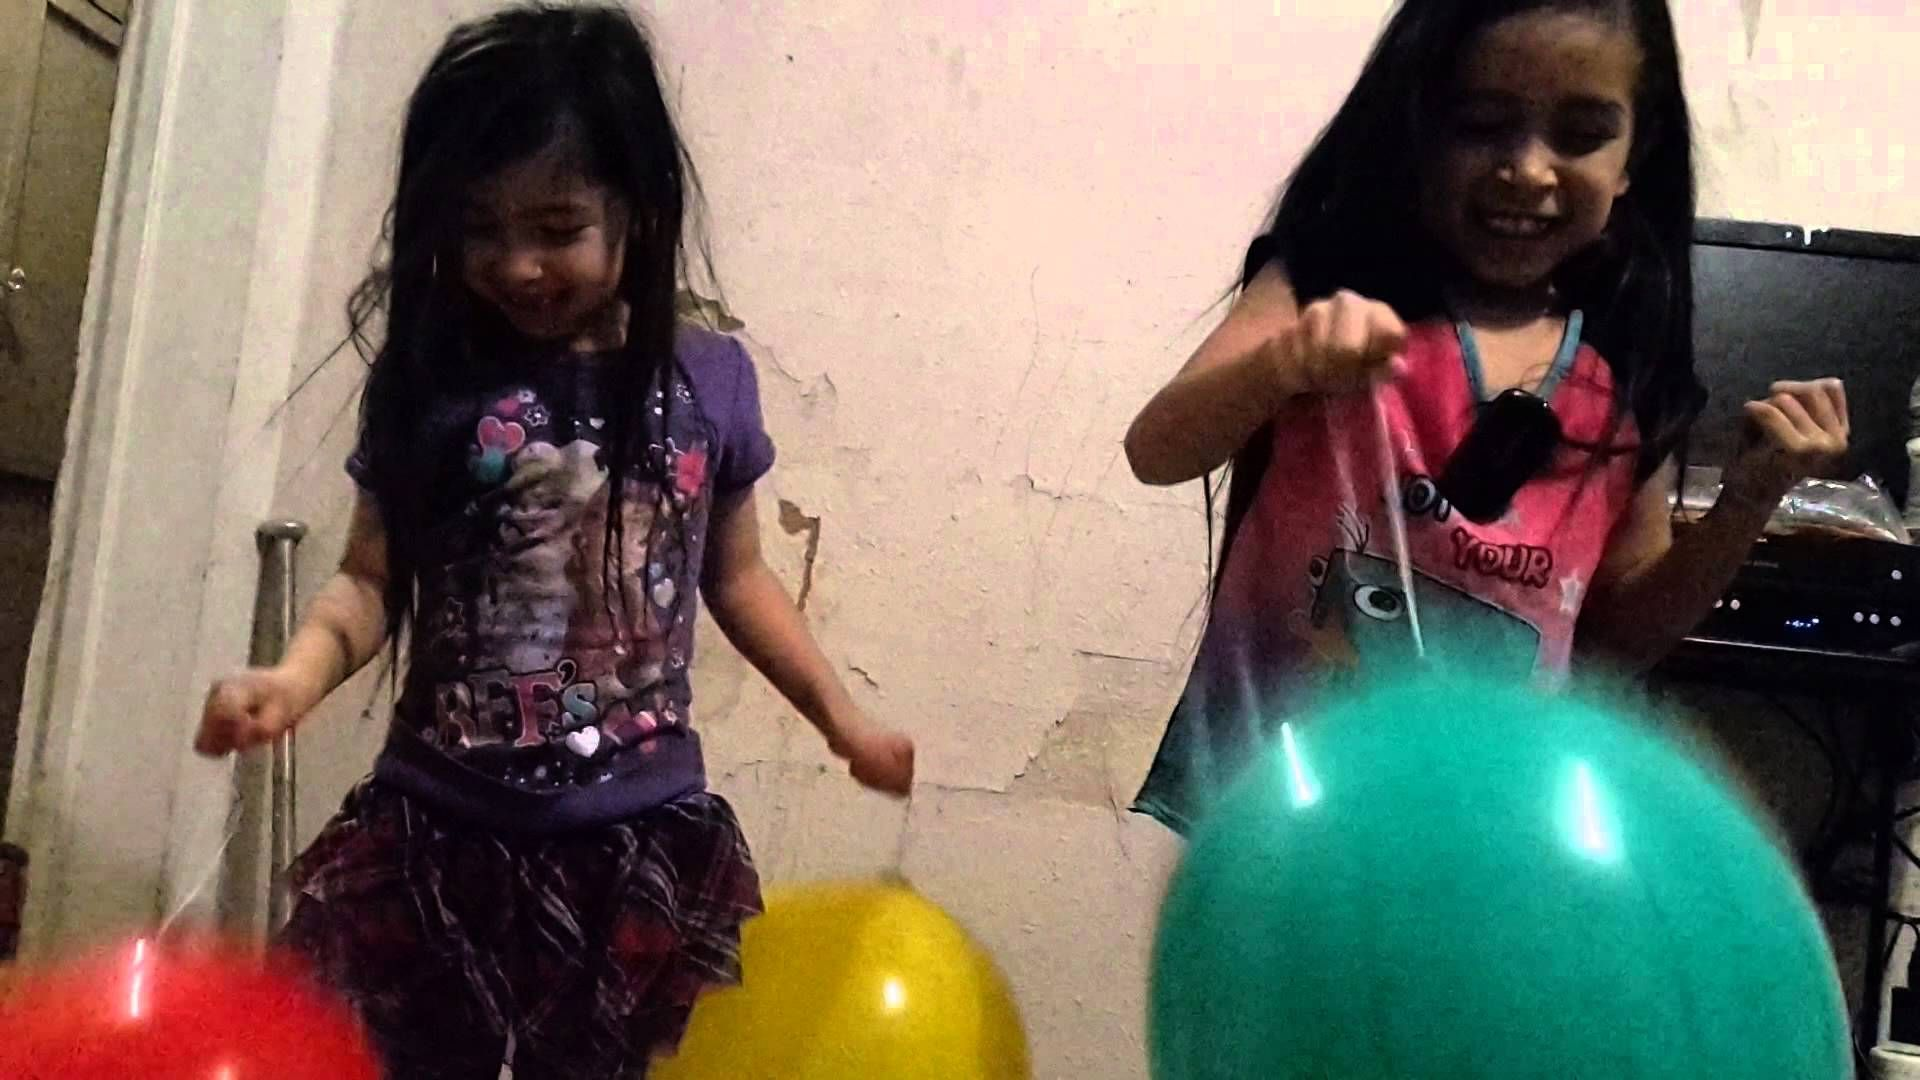 Kids playing with Punch balloons